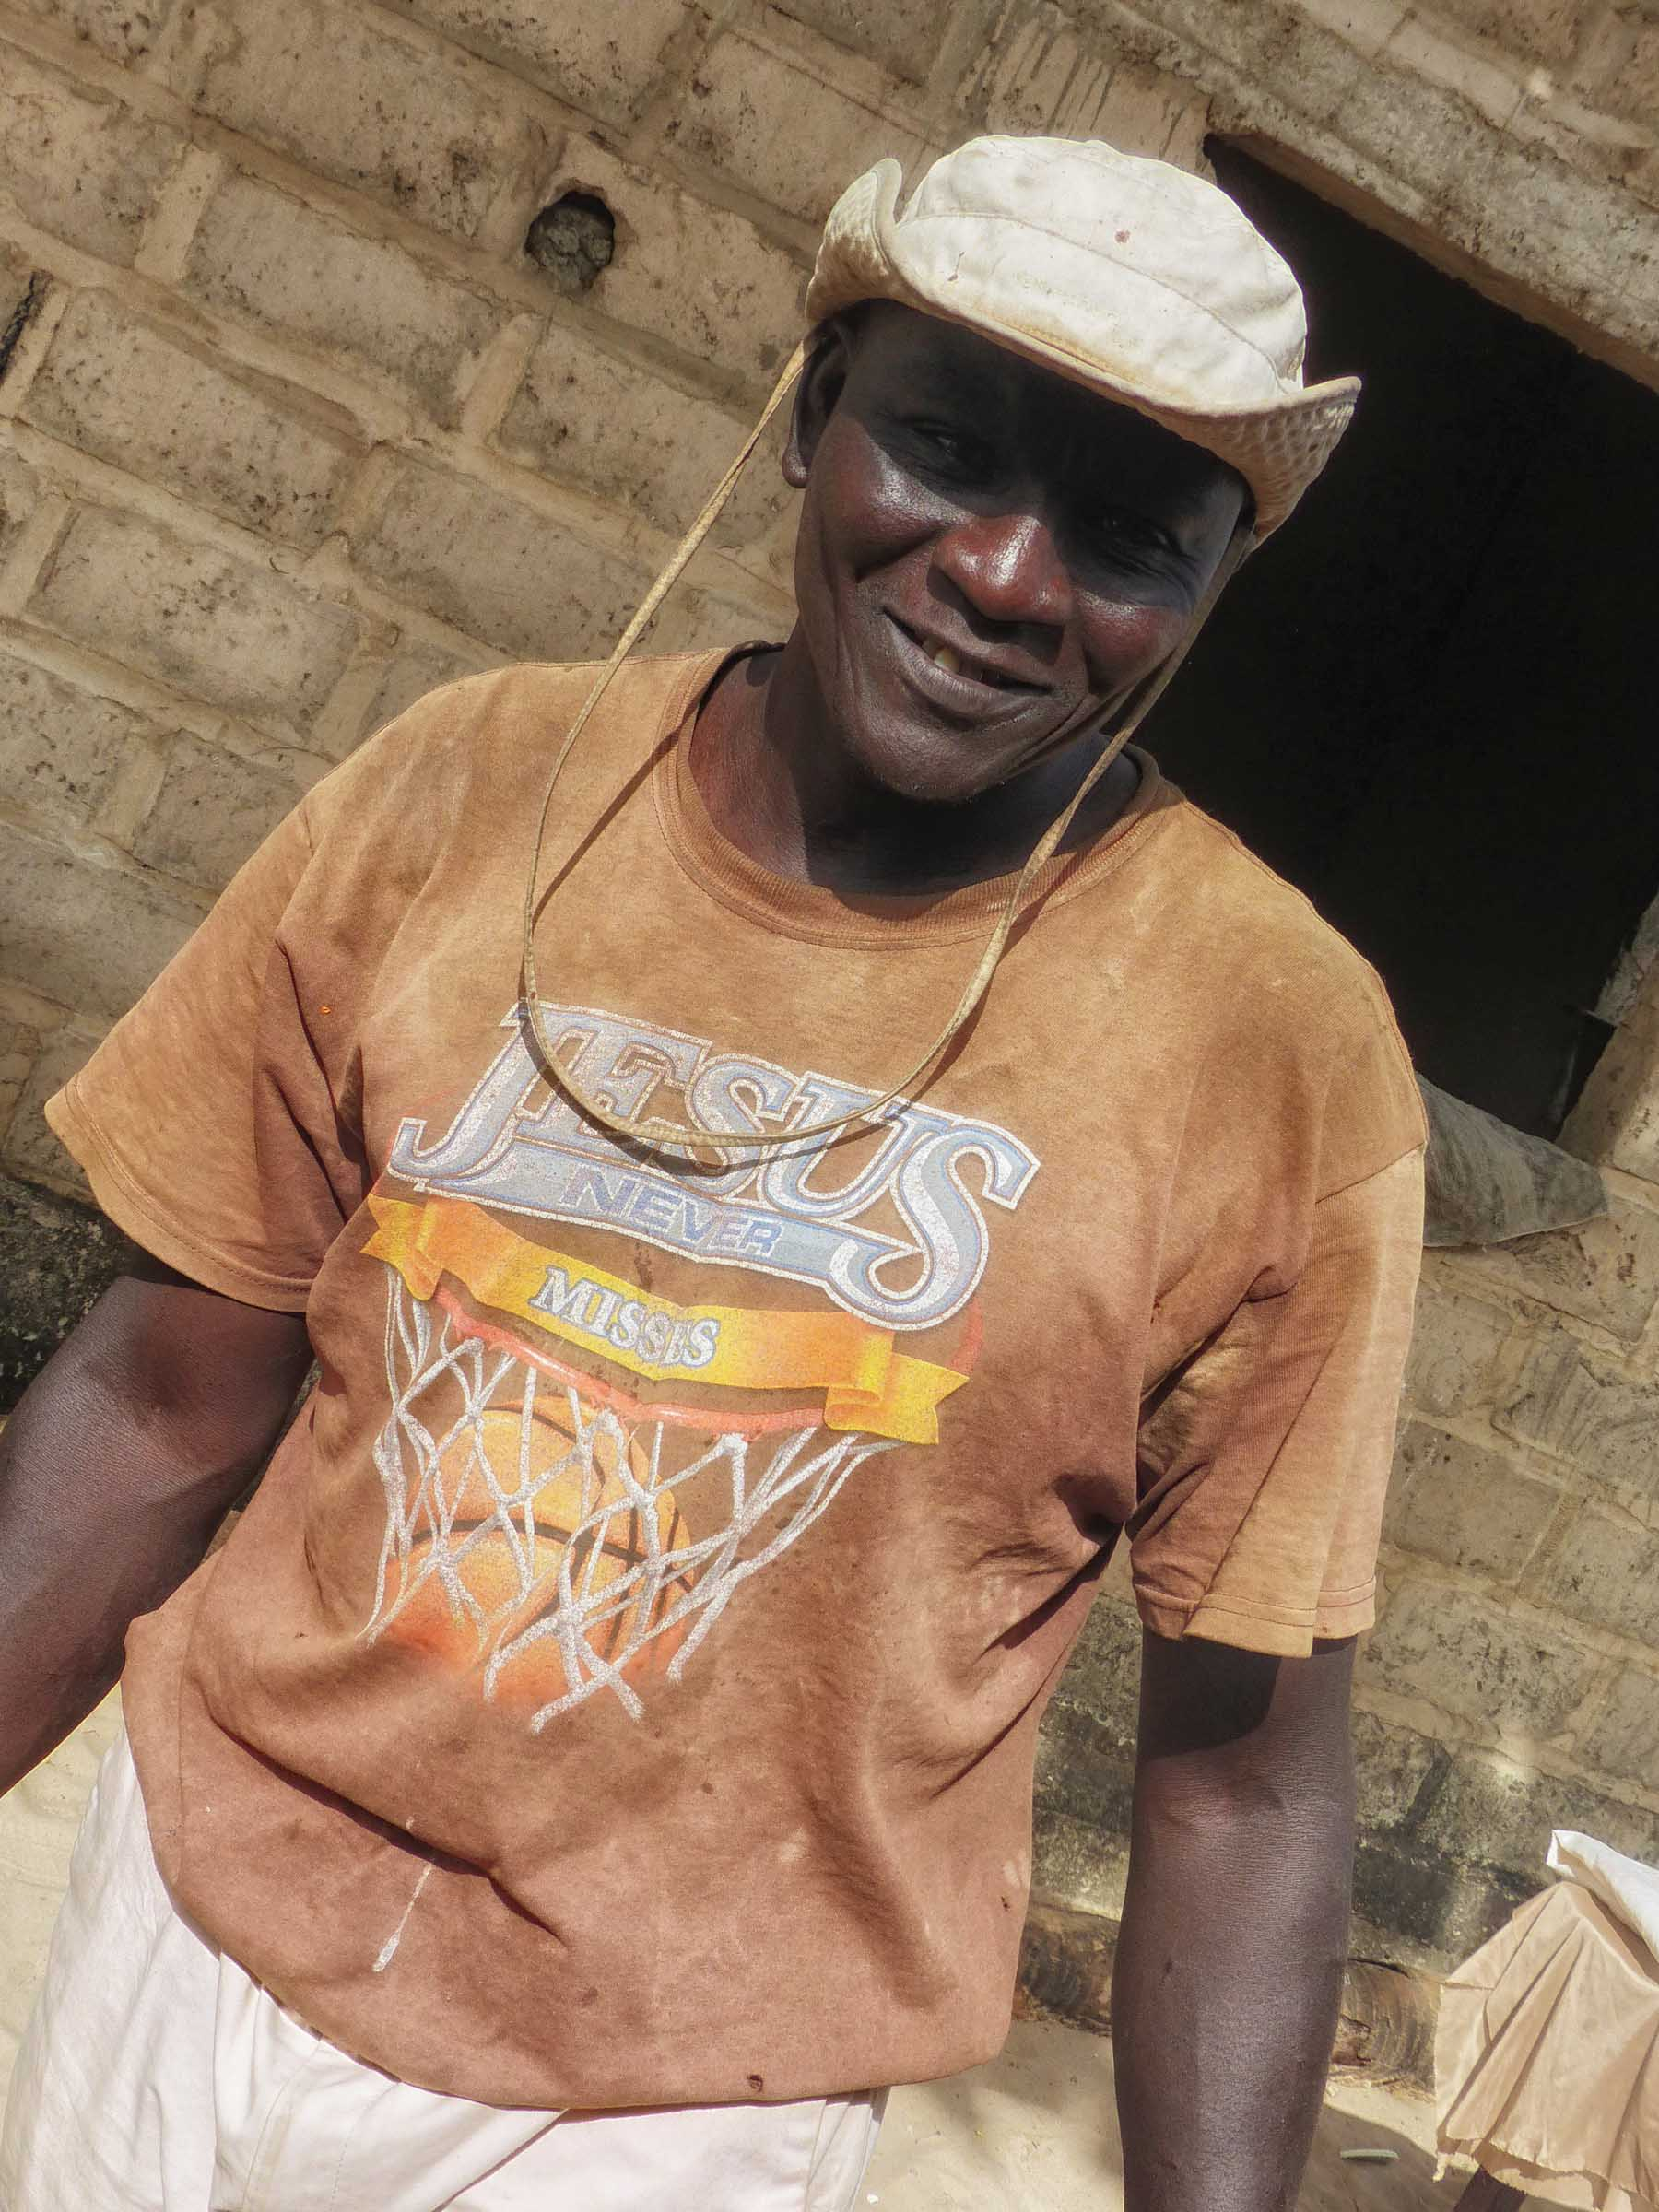 Man in t-shirt and cotton hat